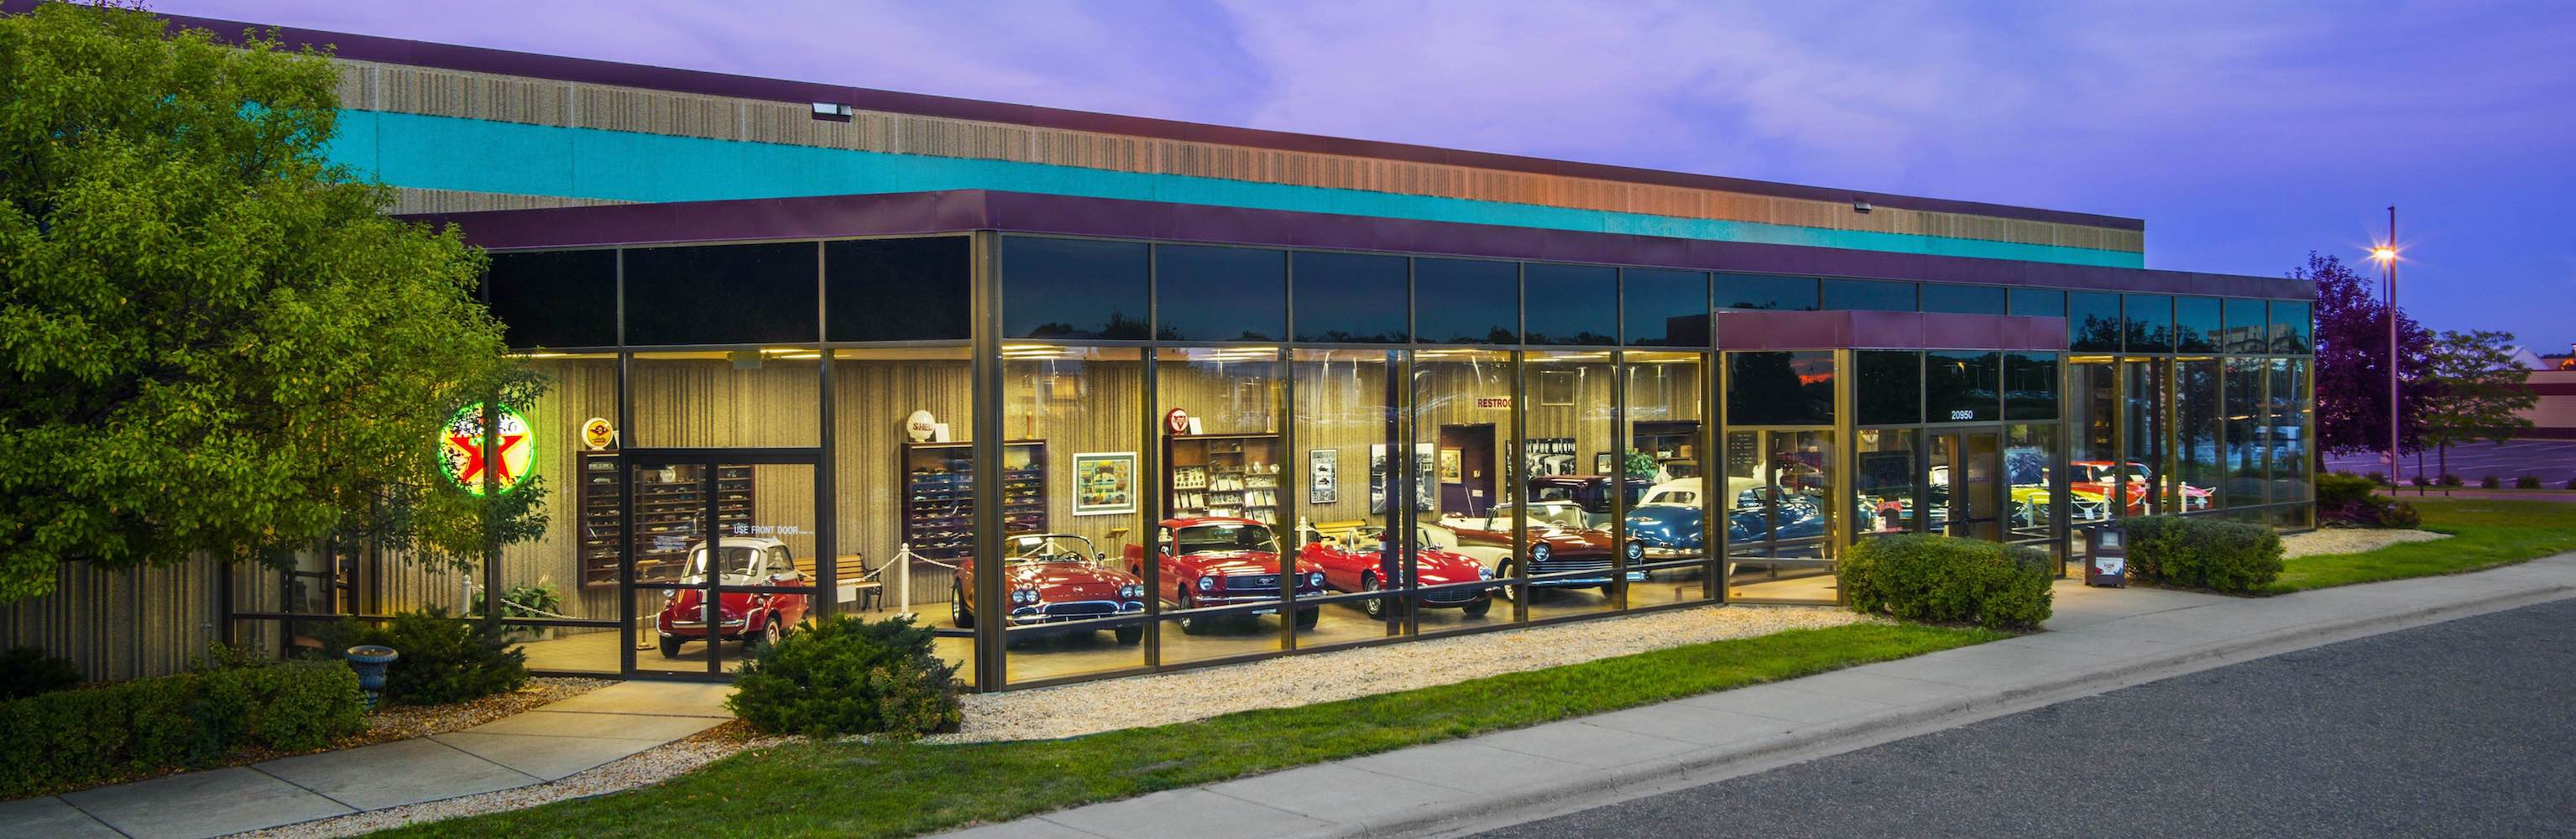 from car museum to classic car dealer classic car dealer rogers minnesota ellingson motorcars. Black Bedroom Furniture Sets. Home Design Ideas